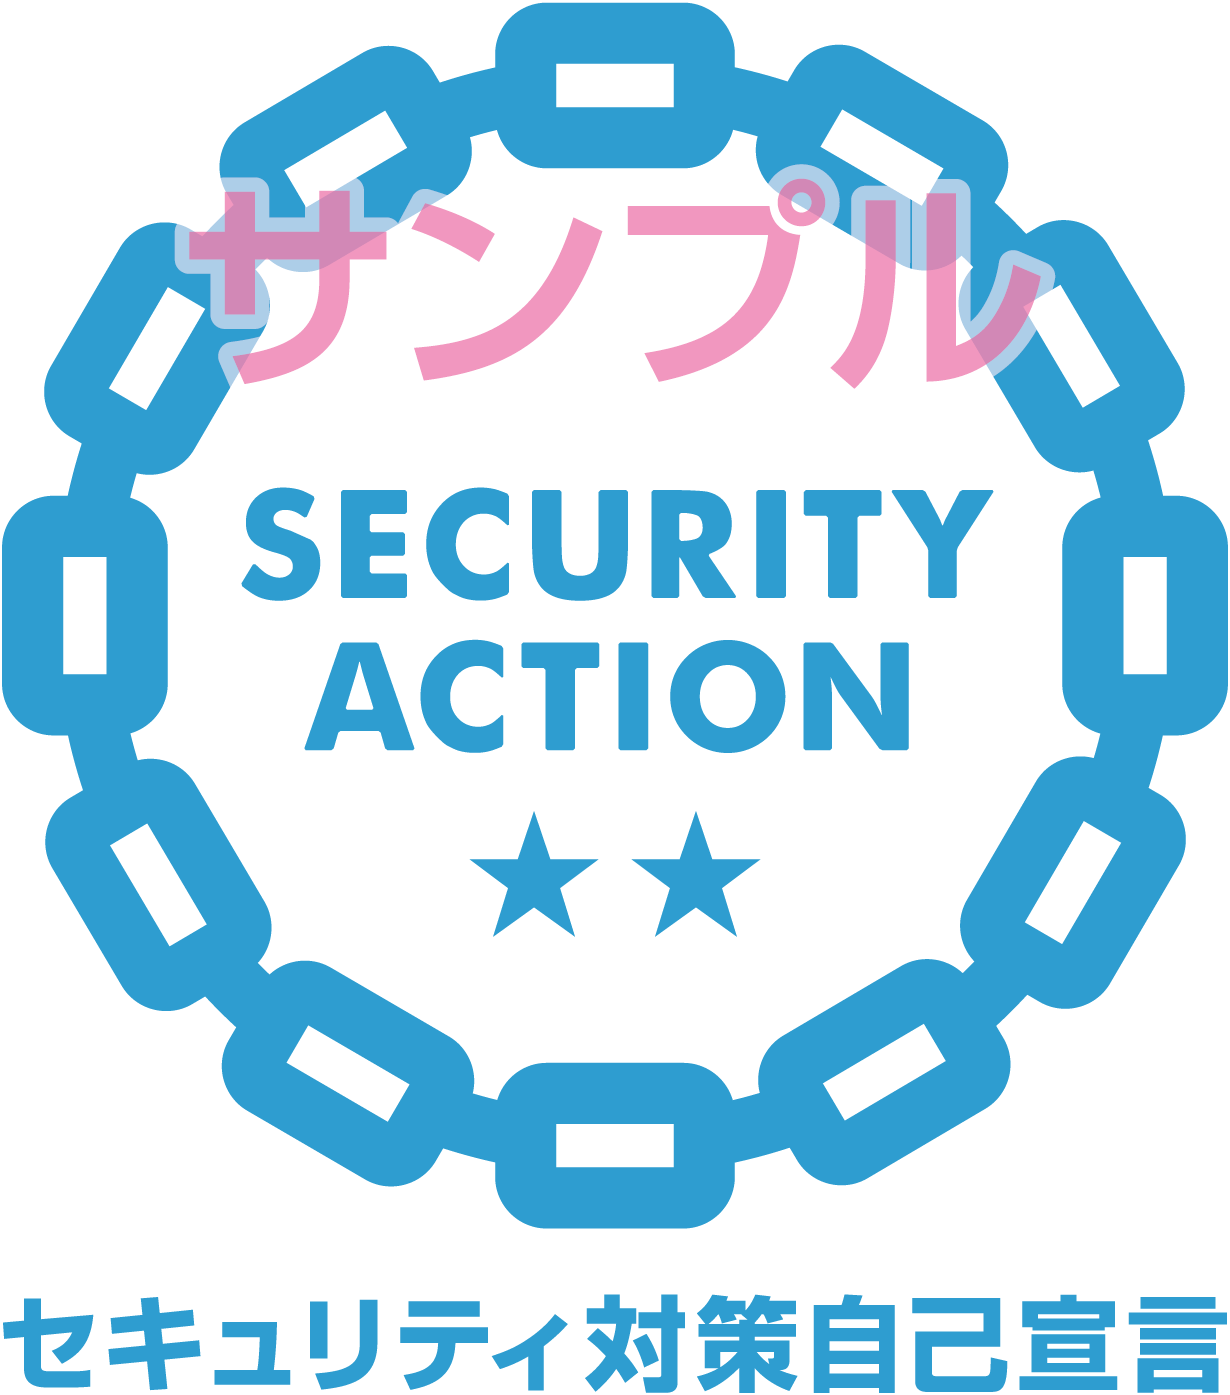 「SECURITY ACTION」自己宣言のご案内